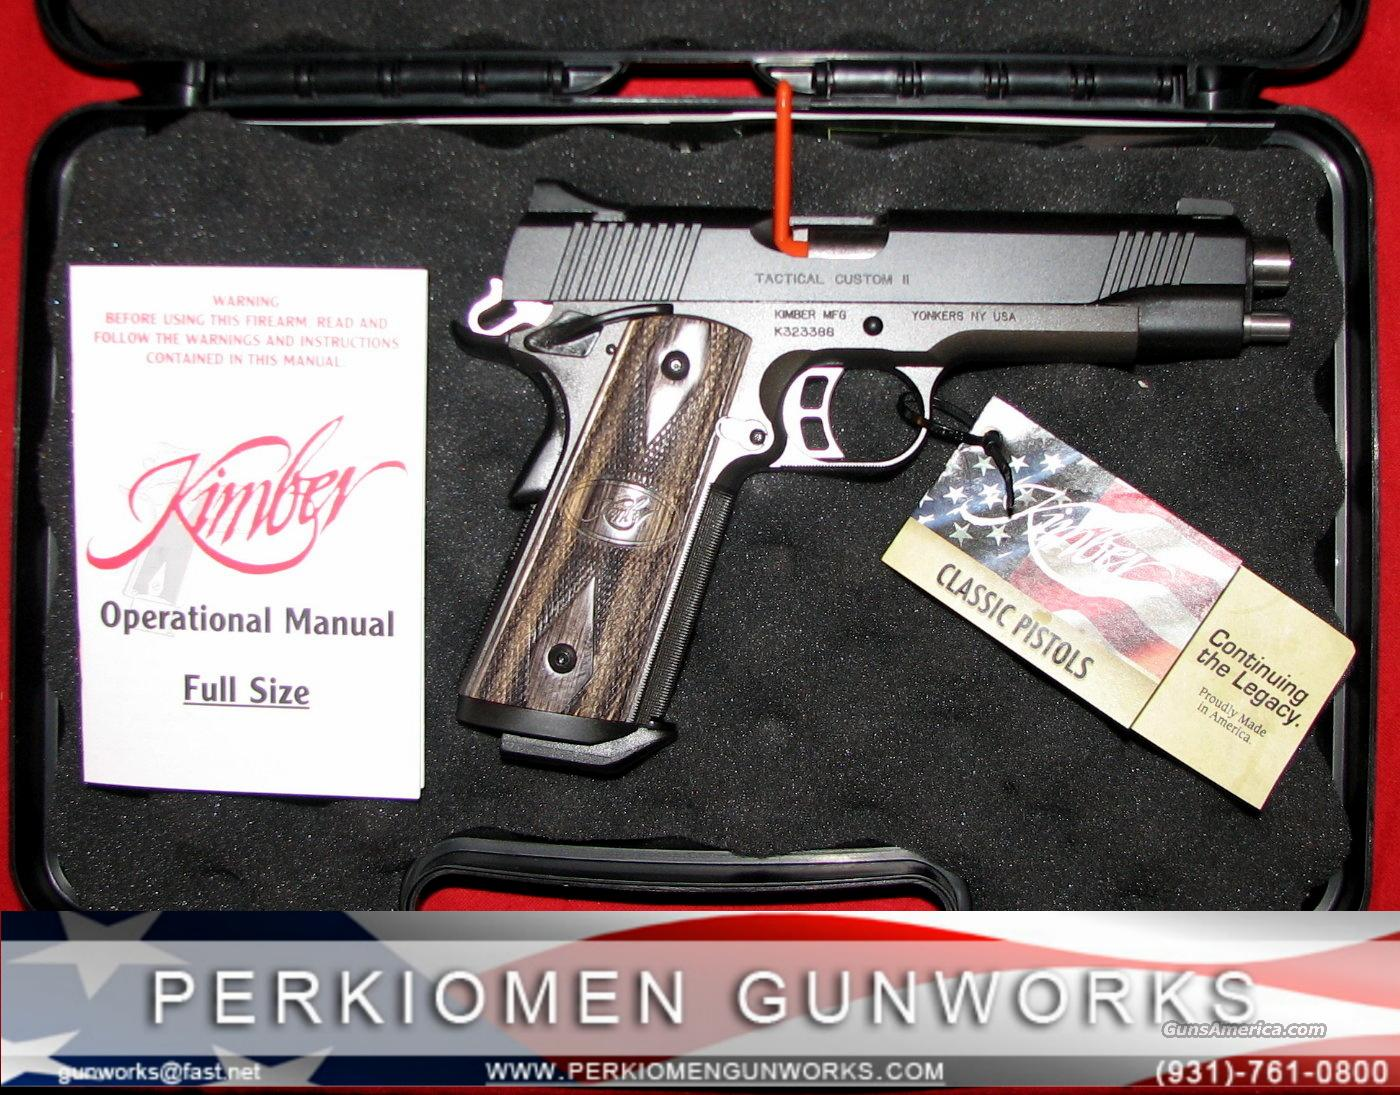 "Tactical Custom II, 5"", 45acp, NIB  Guns > Pistols > Kimber of America Pistols"